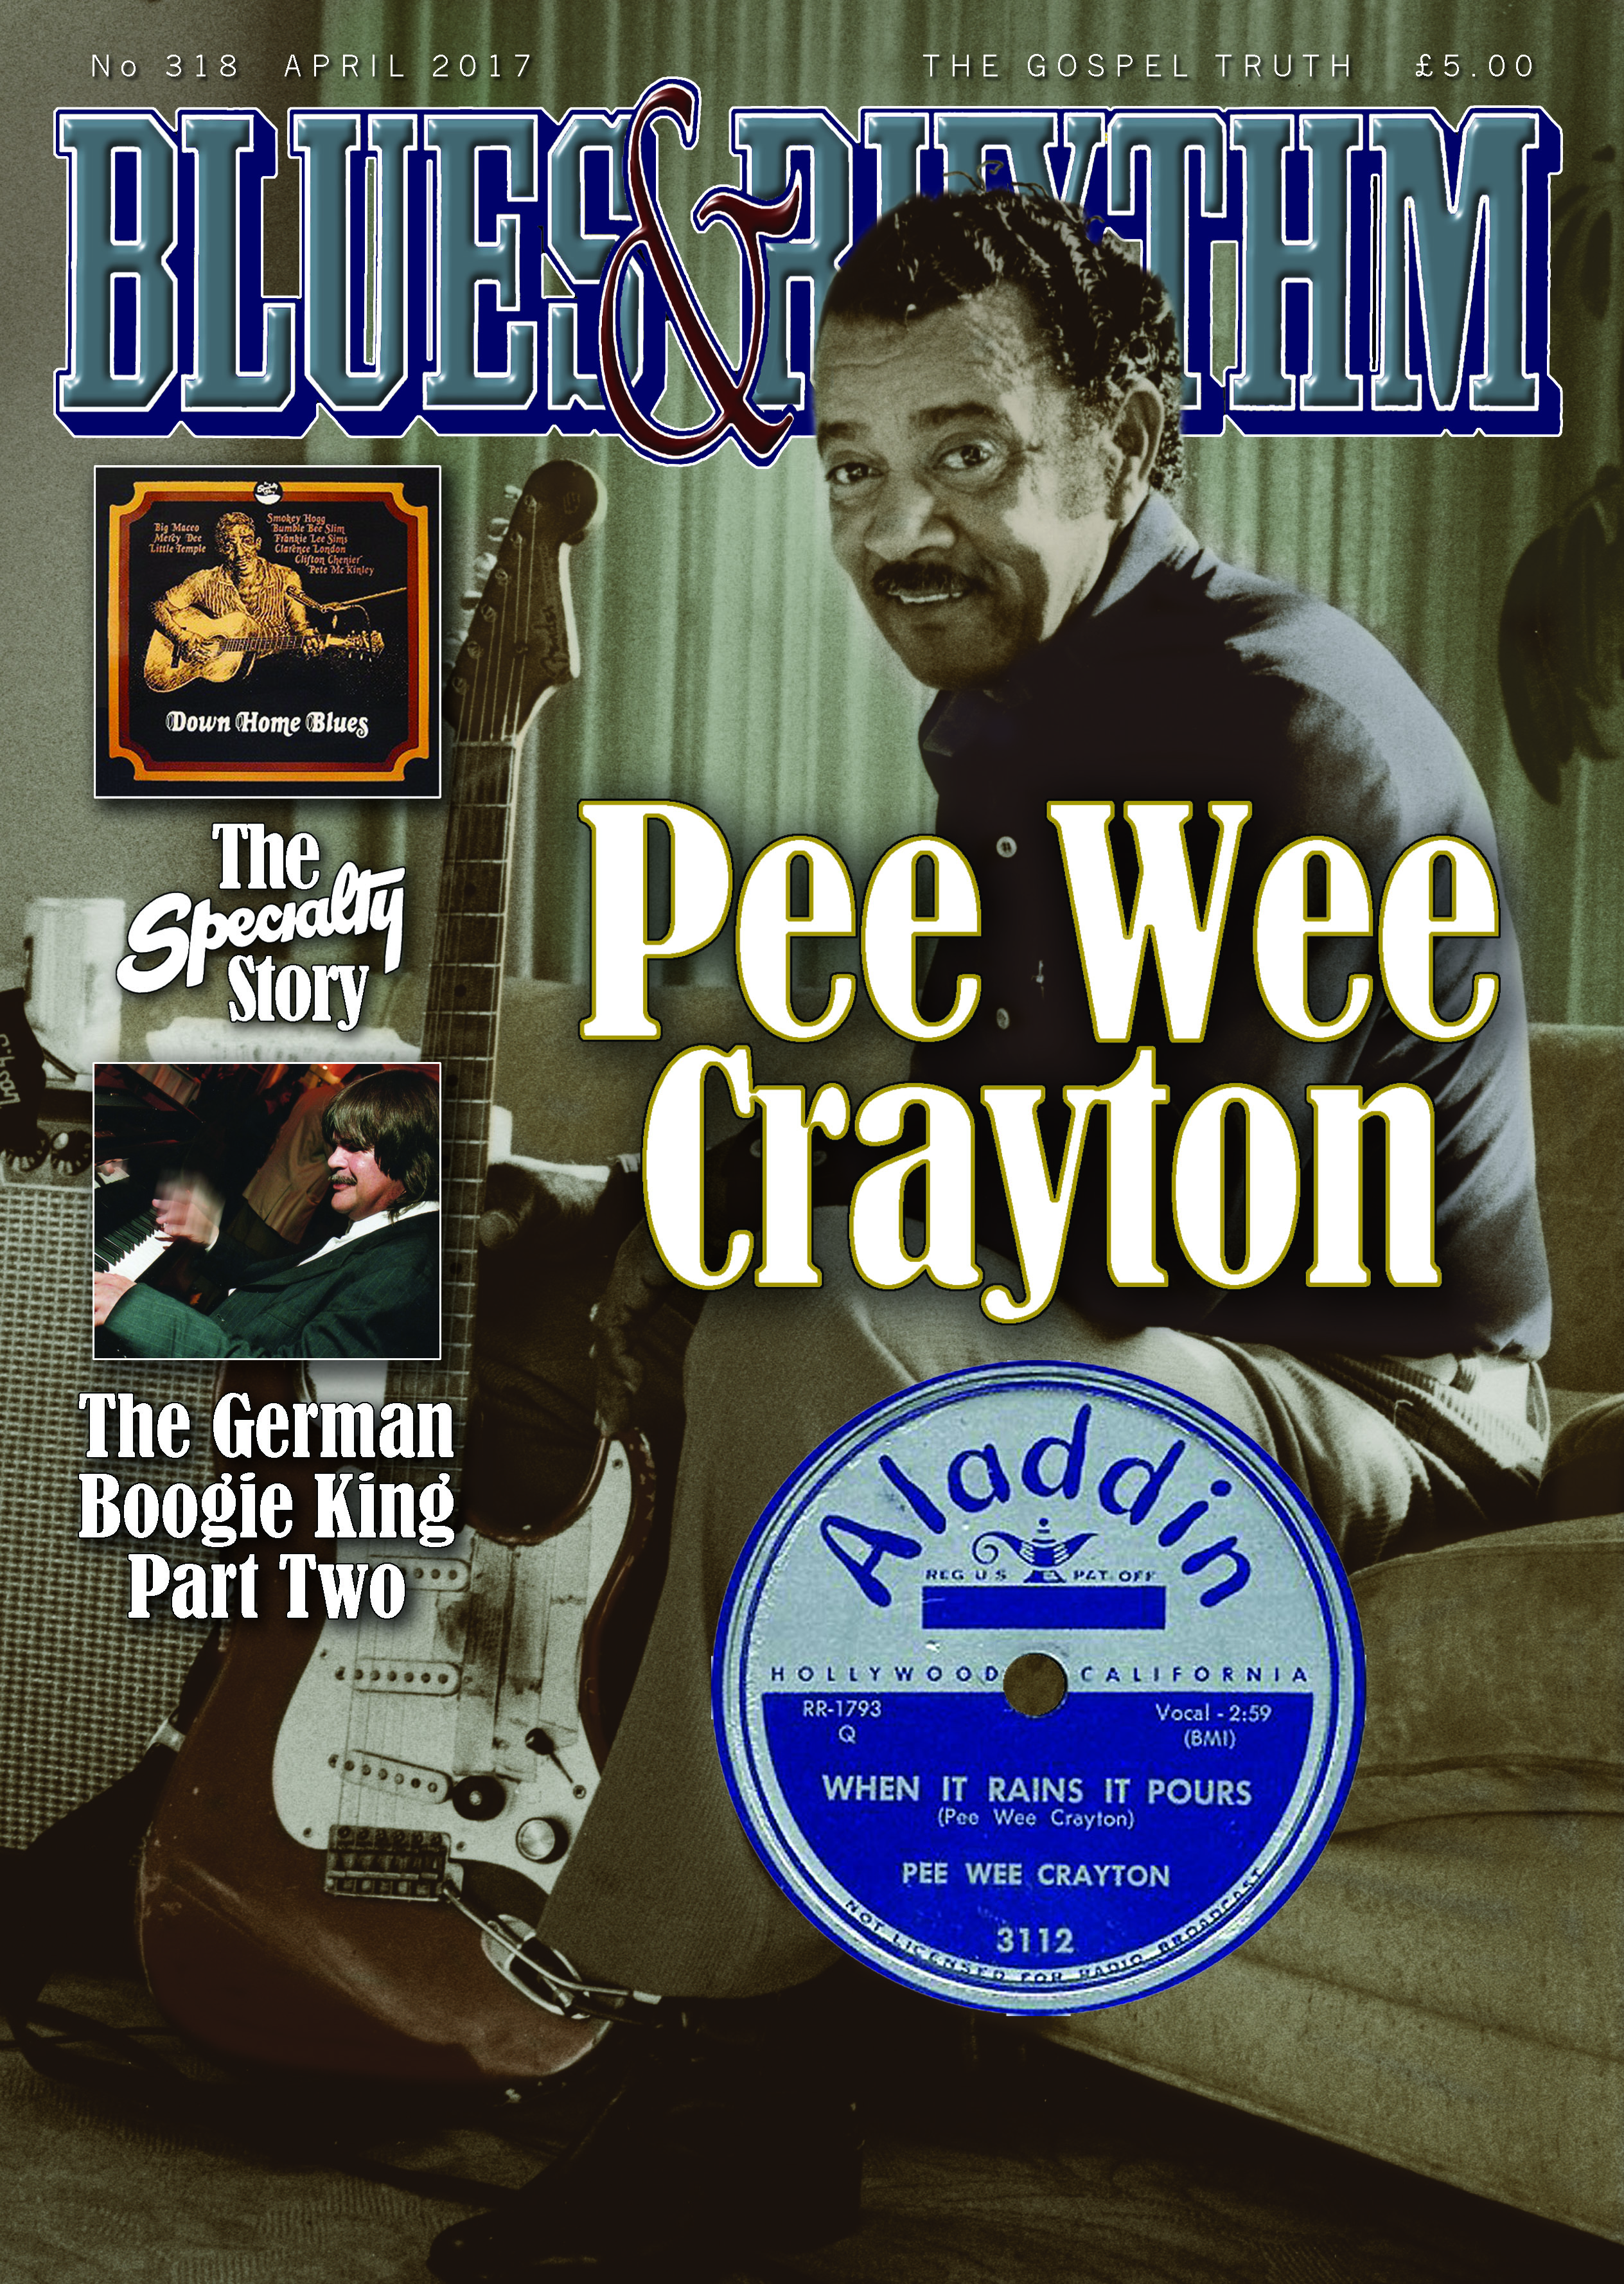 Pee wee crayton discography with you